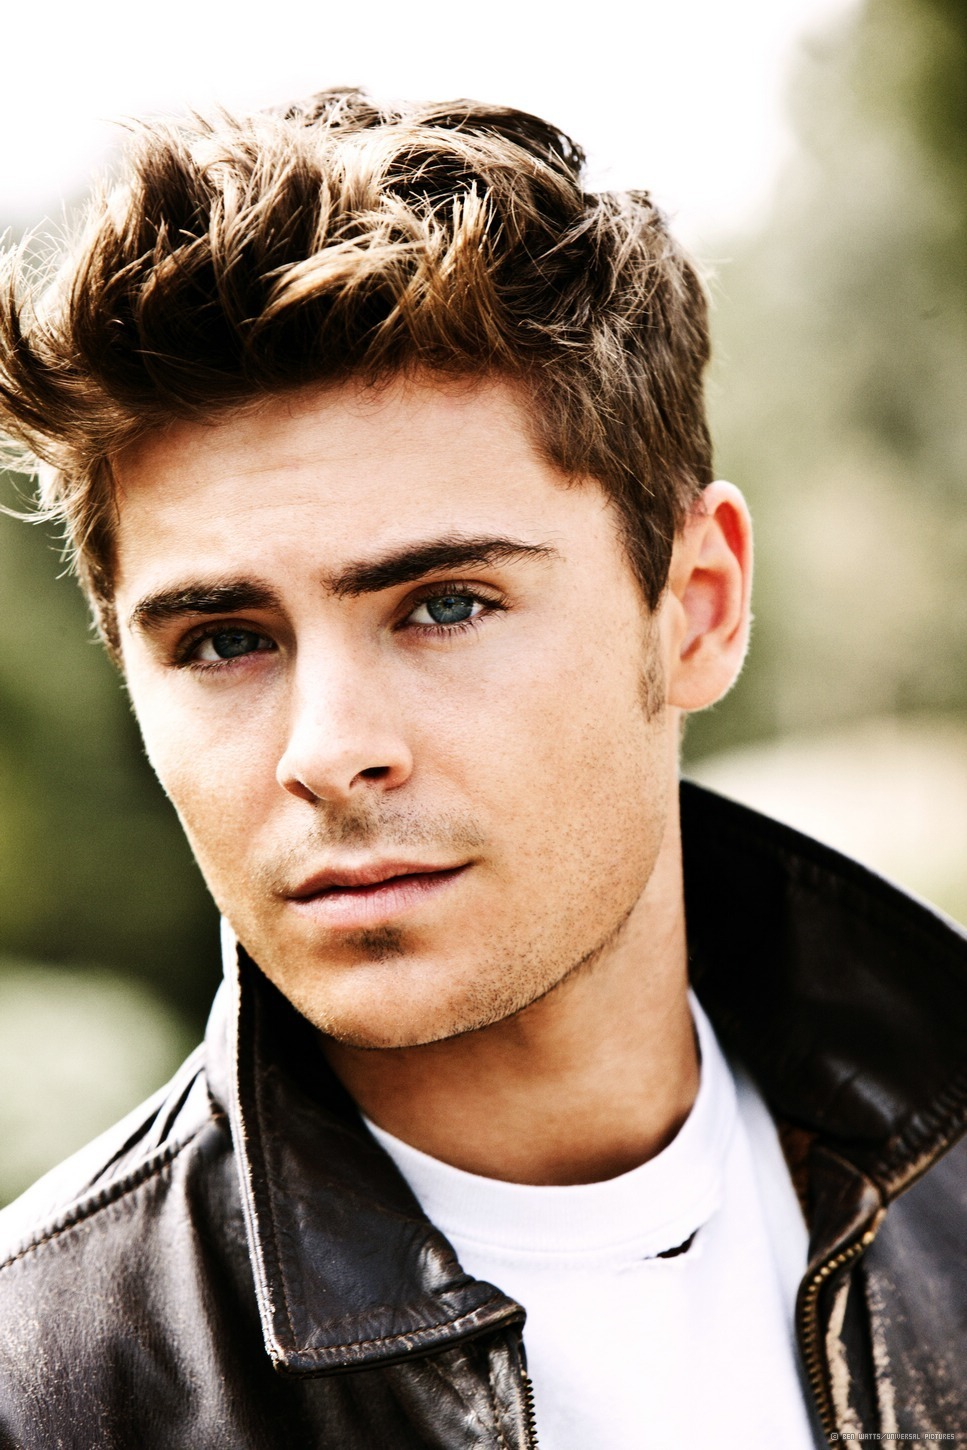 967x1450 - Zac Efron Wallpapers 23